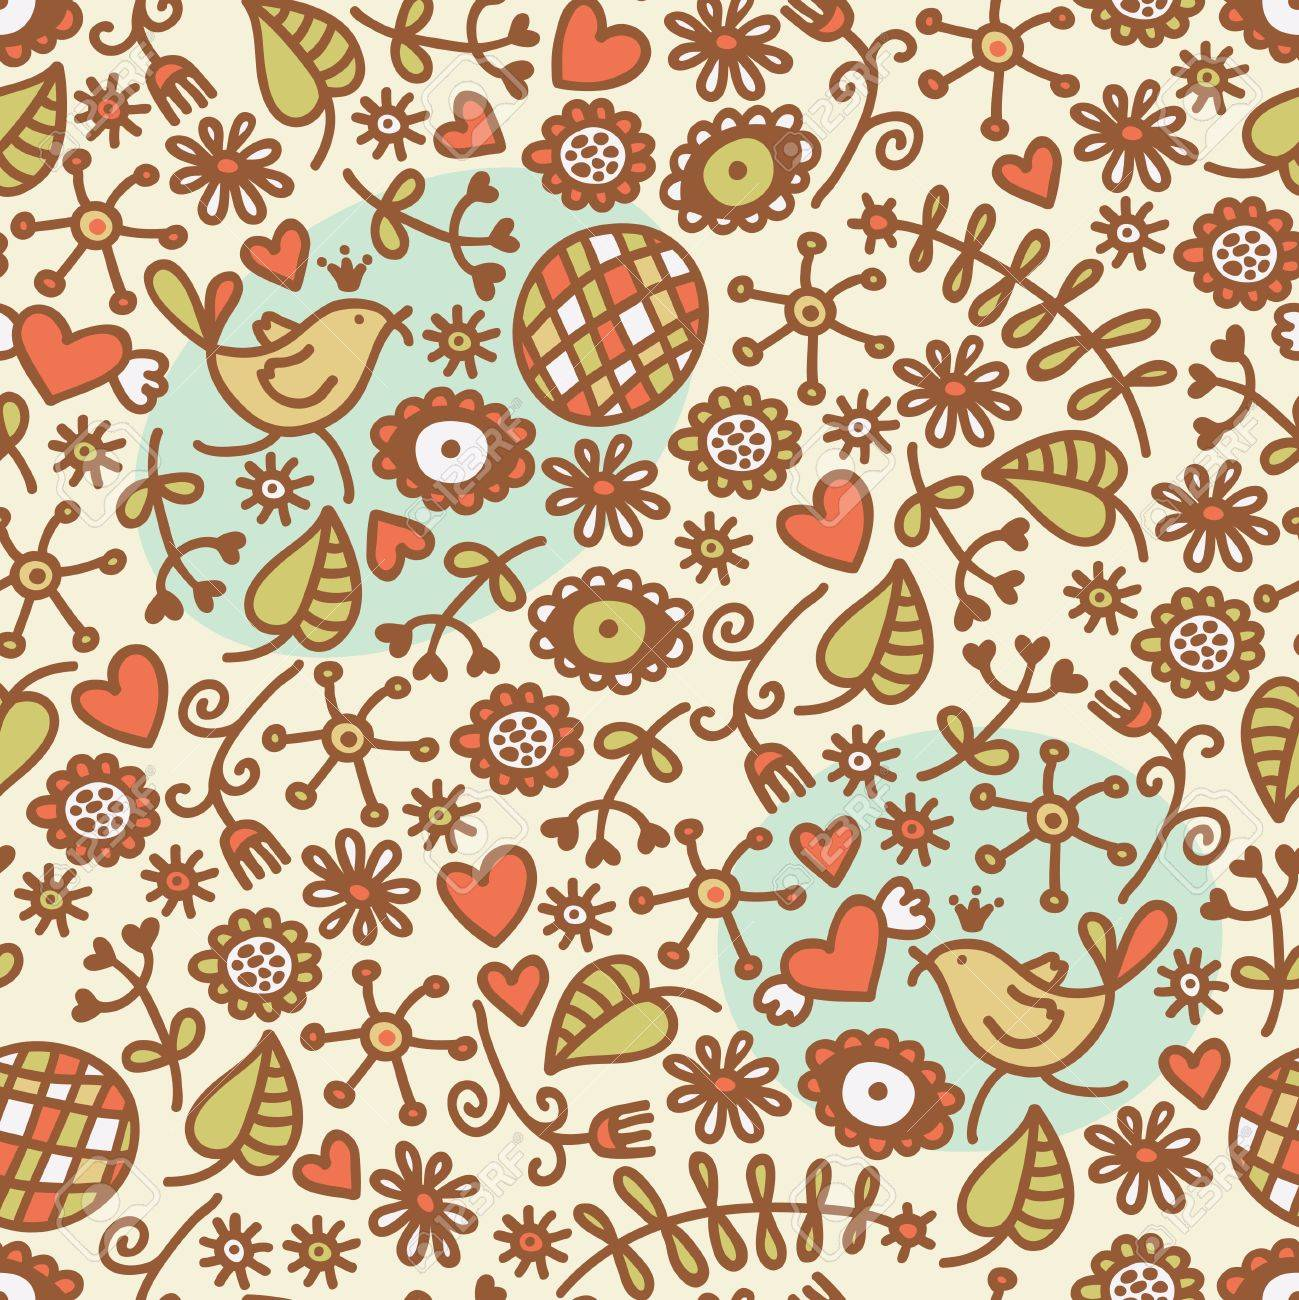 Seamless pattern with romantic birds in crown, hearts and flora. Vector doodle illustration. Stock Vector - 11747450